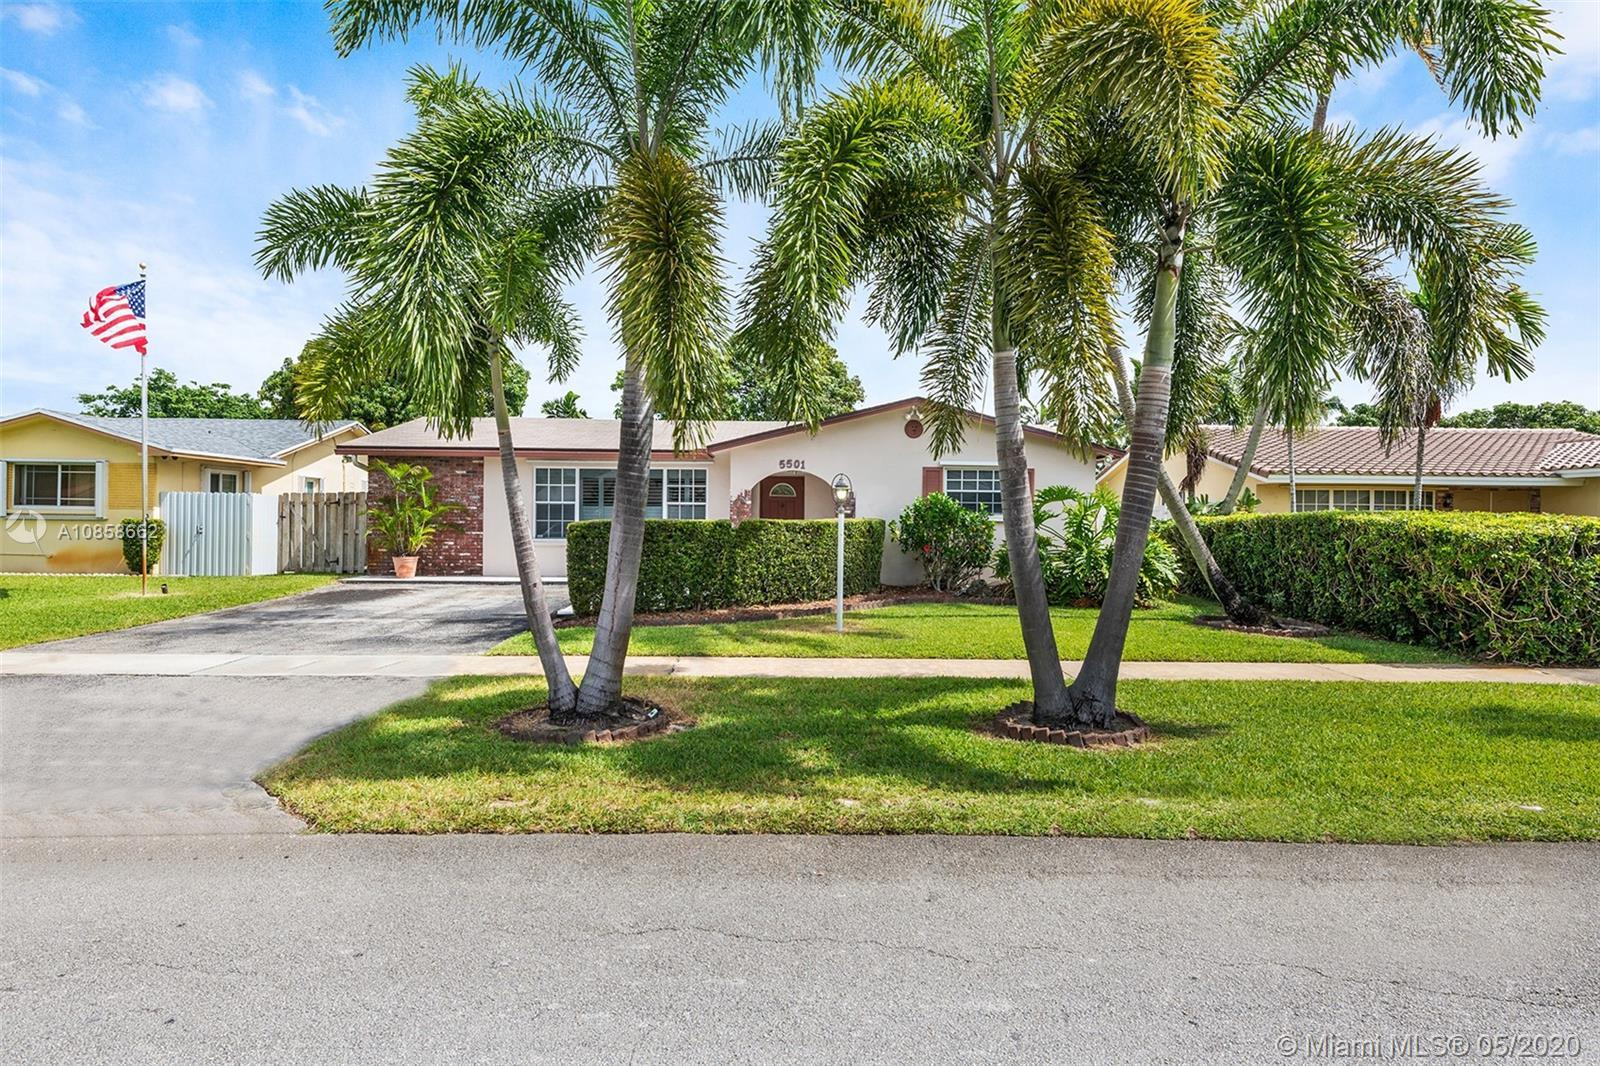 Beautiful and well-maintained Hollywood Hills 3 bedroom/2 bathroom home! Pride of ownership is evide